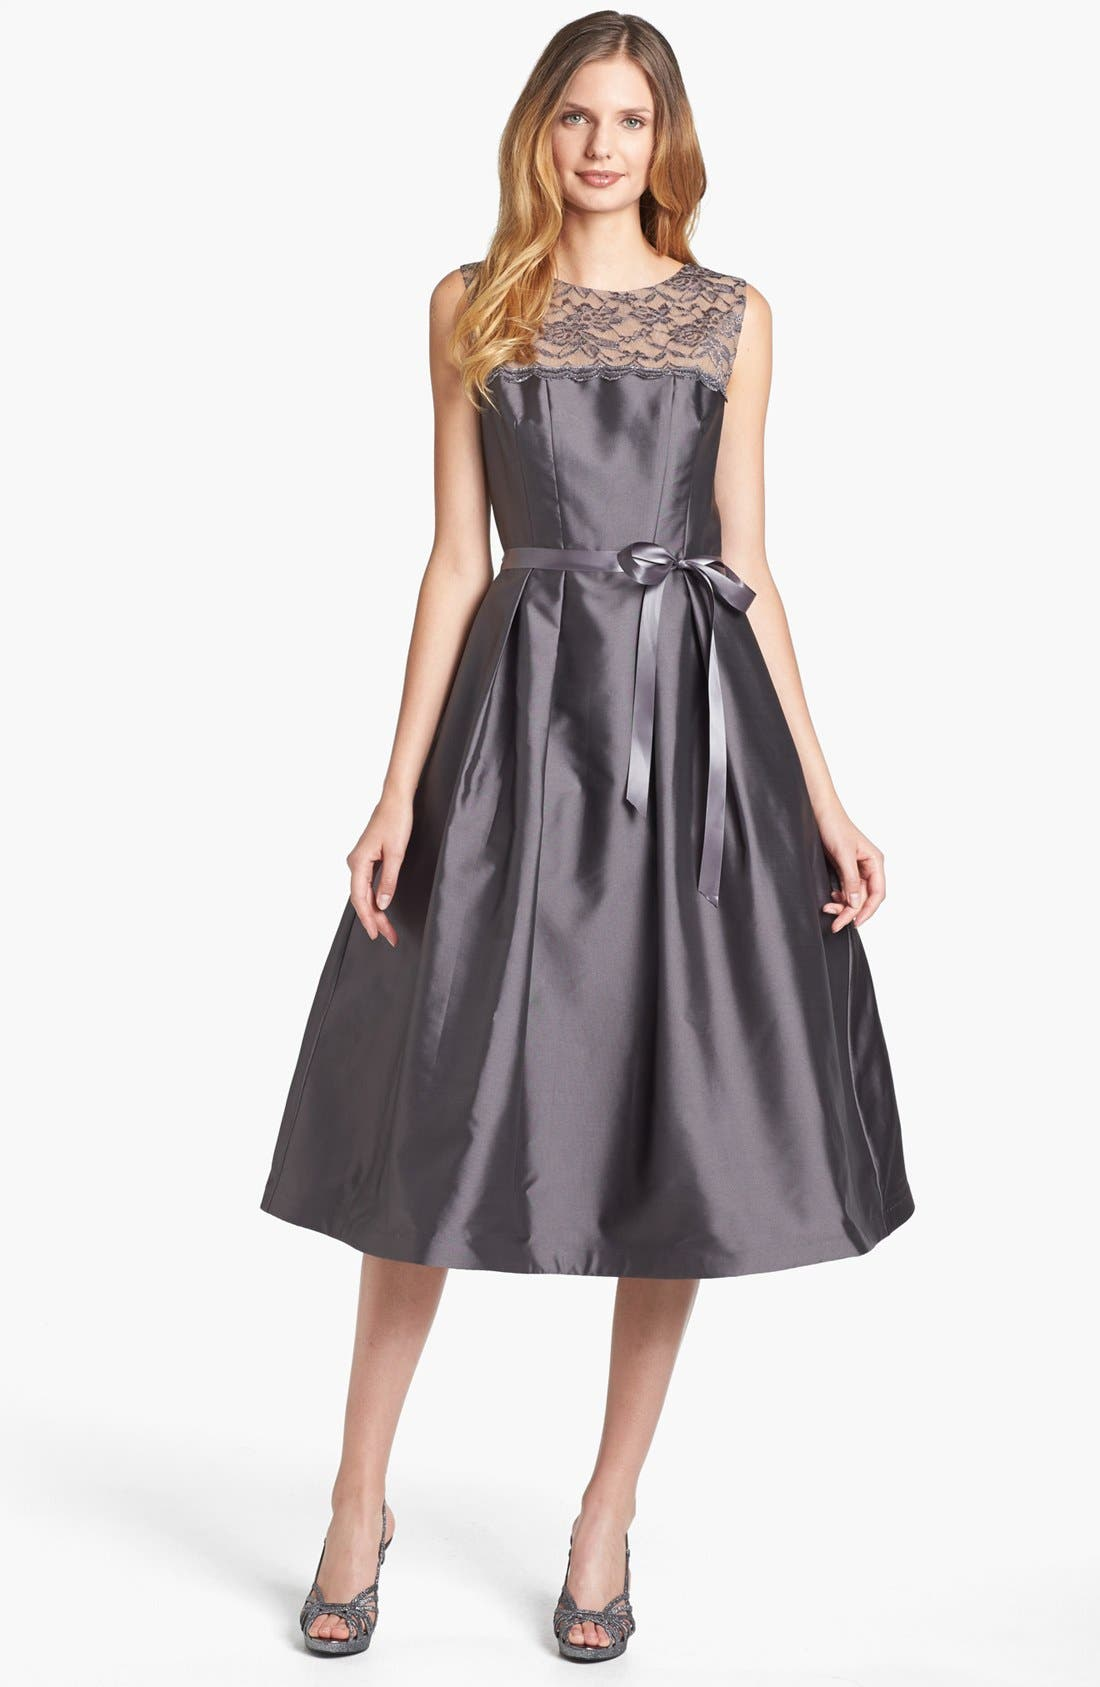 Alternate Image 1 Selected - Alex Evenings Illusion Yoke Satin Fit & Flare Dress